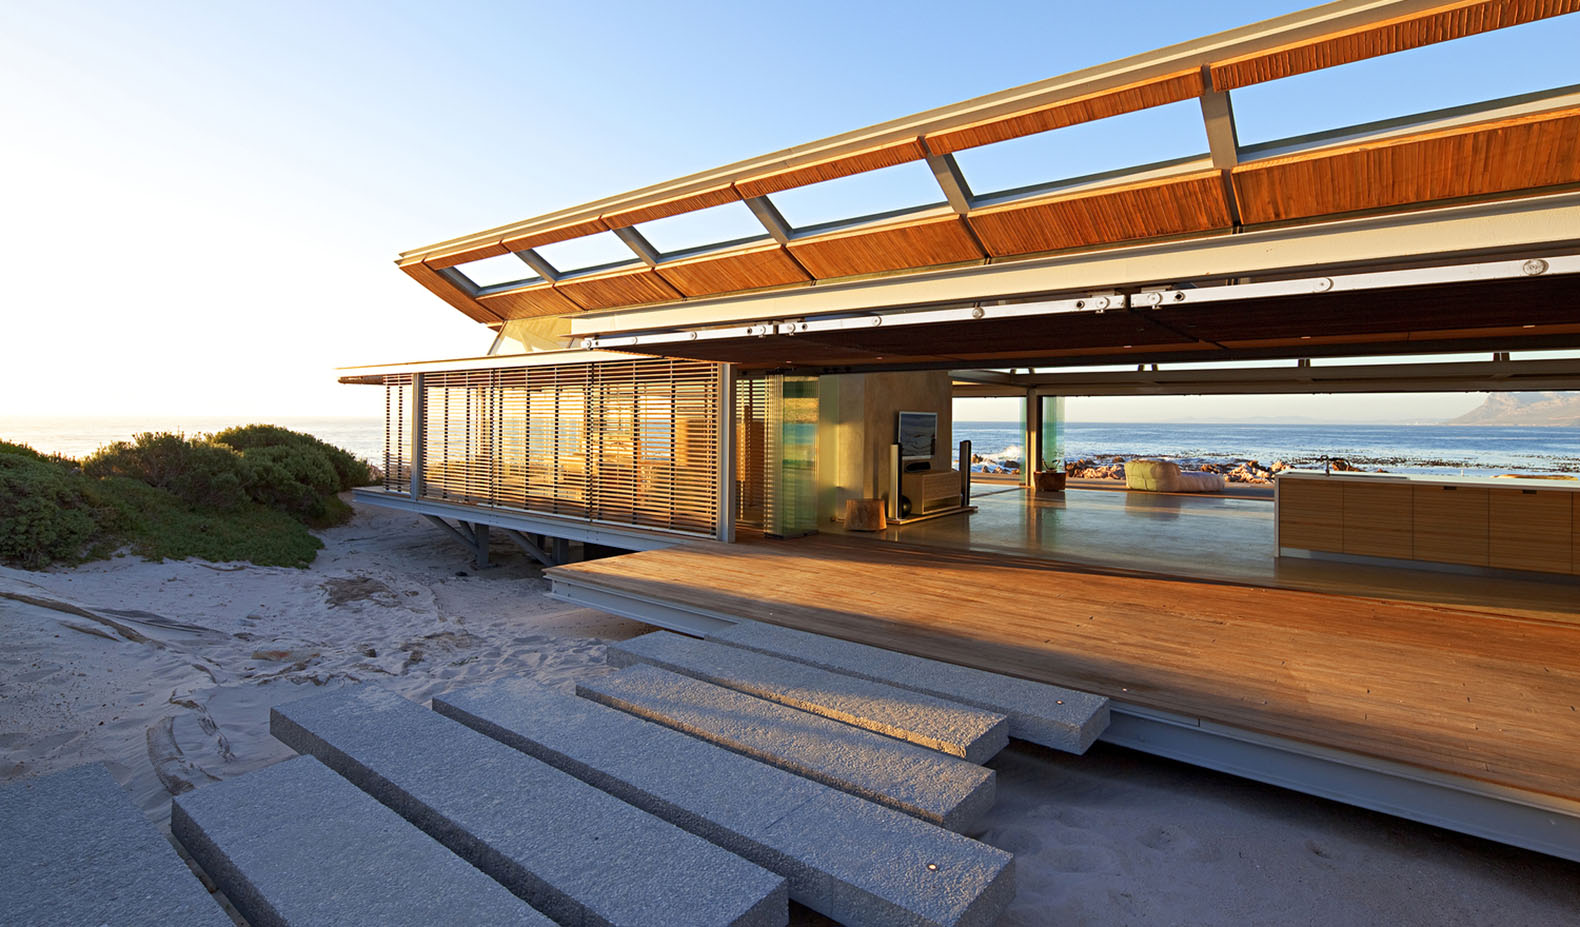 Rooiels beach house in cape town controls natural light for Natural light in homes